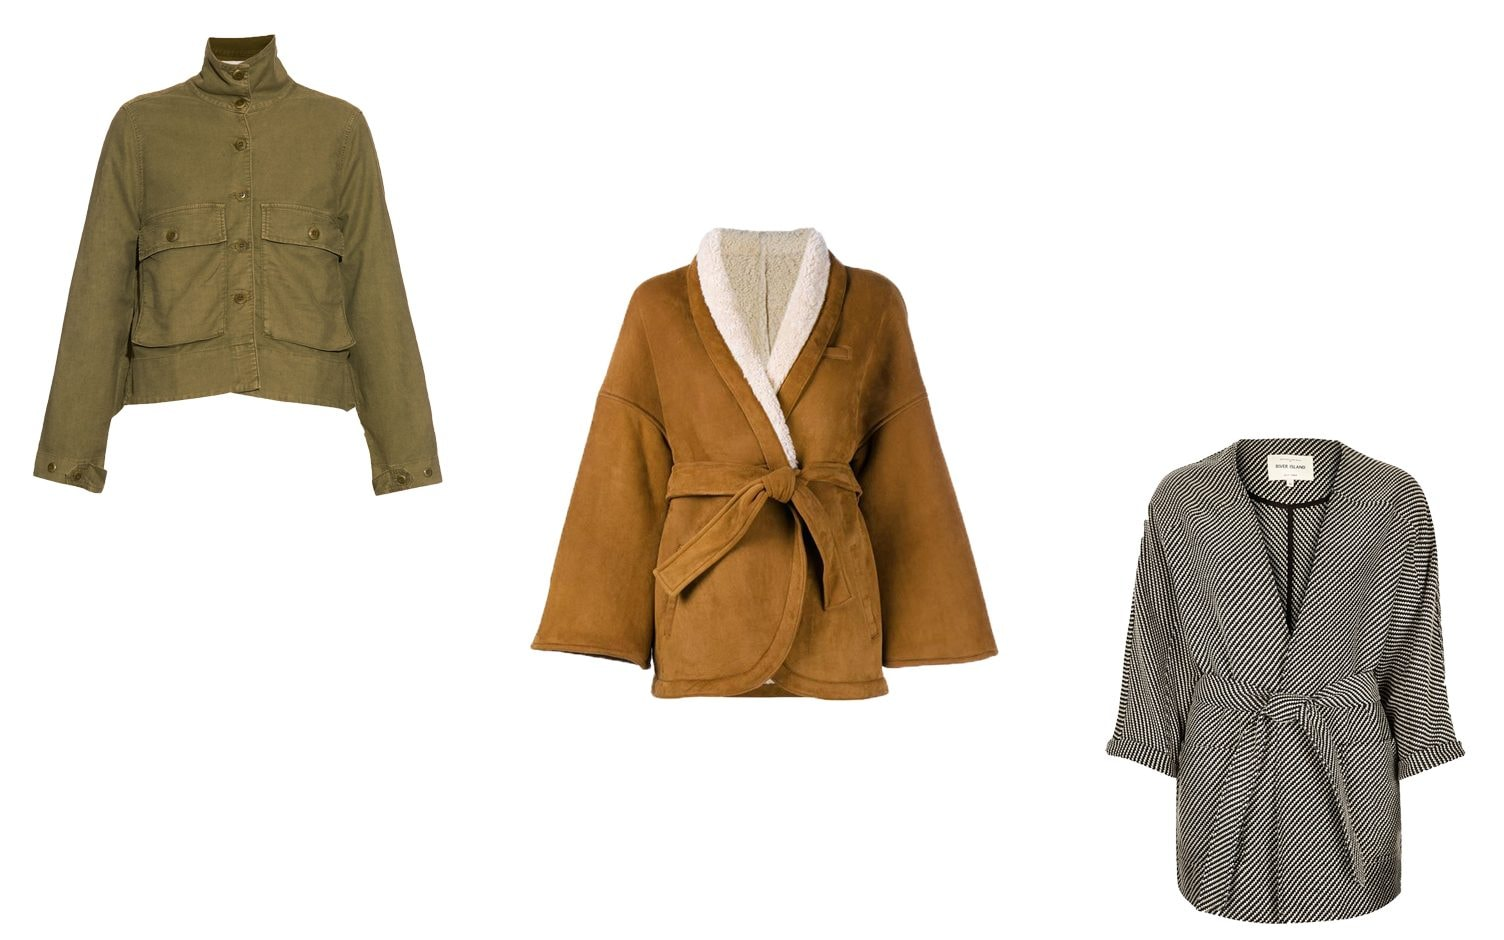 A Few Chic Alternatives To The Winter Coat Thats Too Warm